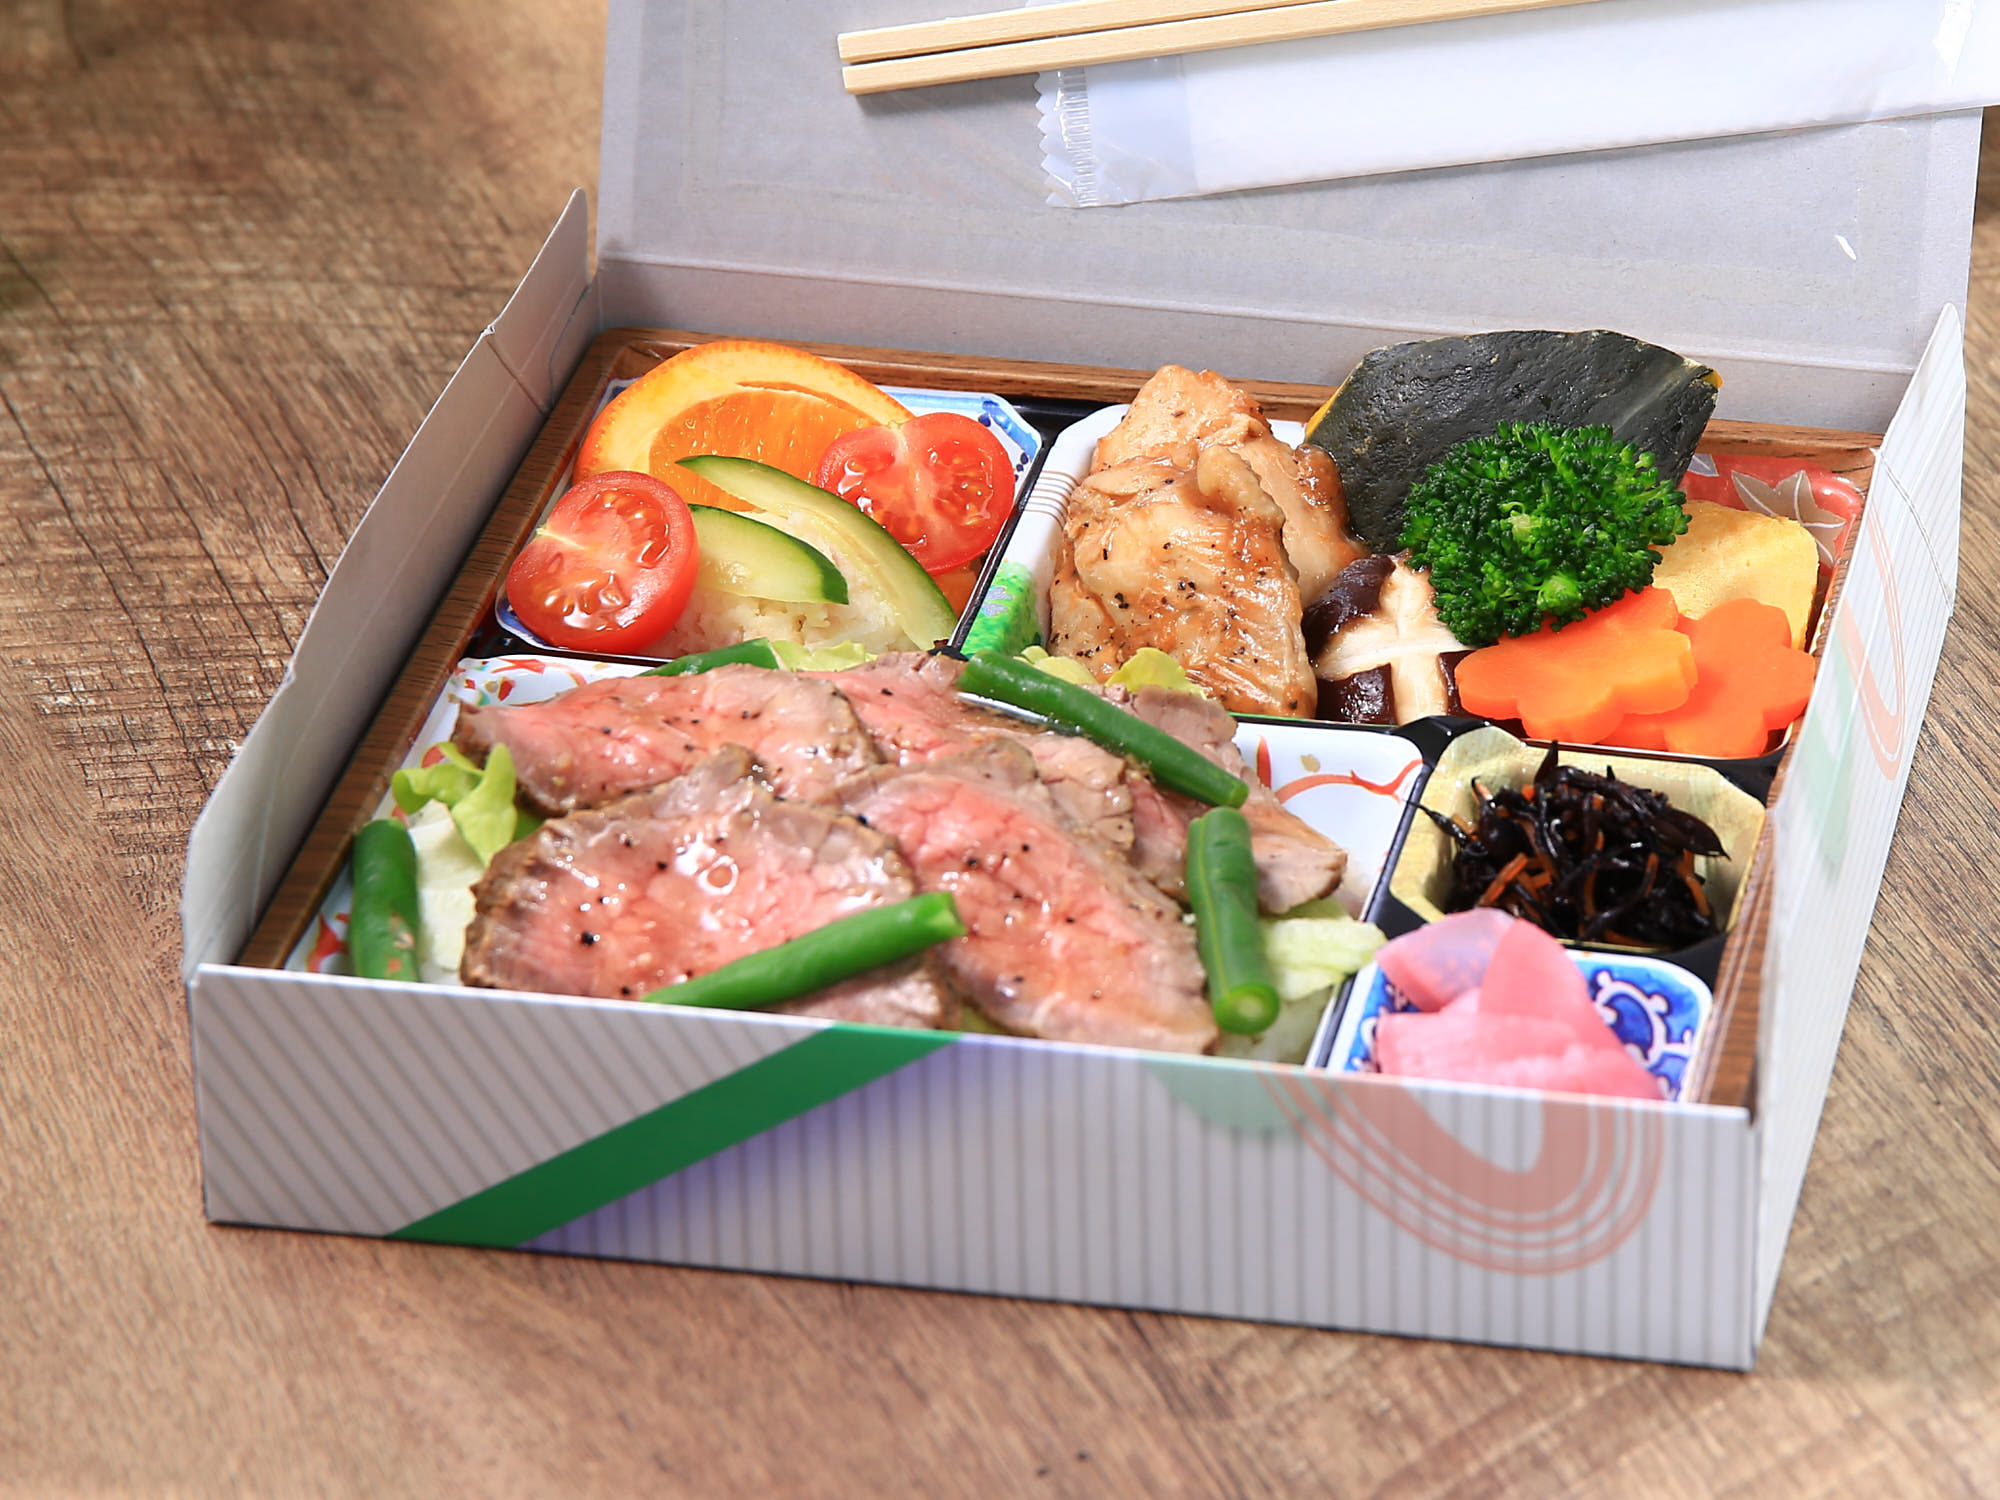 LUNCH BOX DELIVERY PLAN-お弁当デリバリープラン-|1,500円